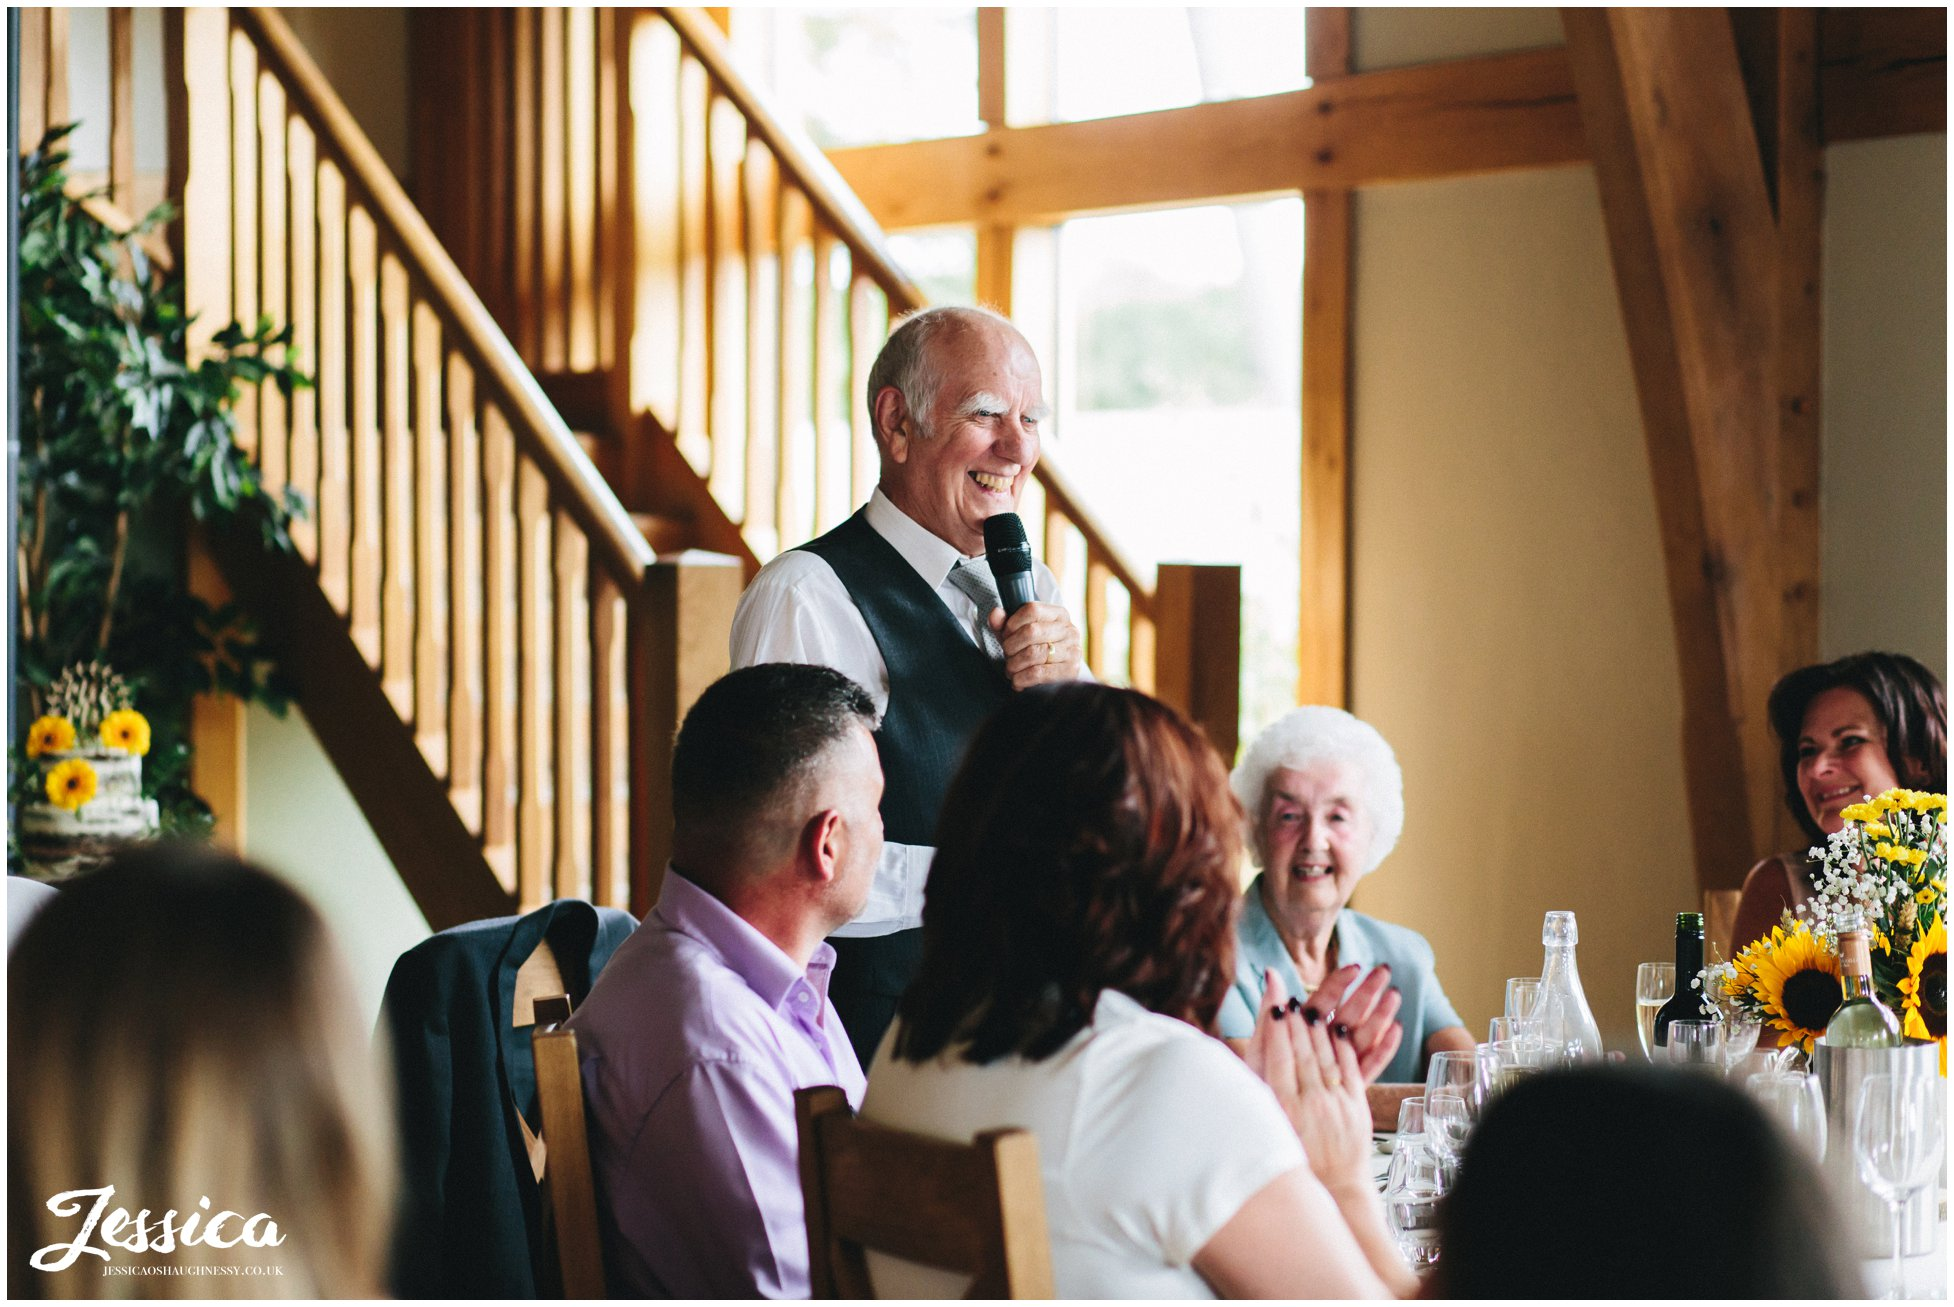 the brides grandfather makes a speech at the wedding reception